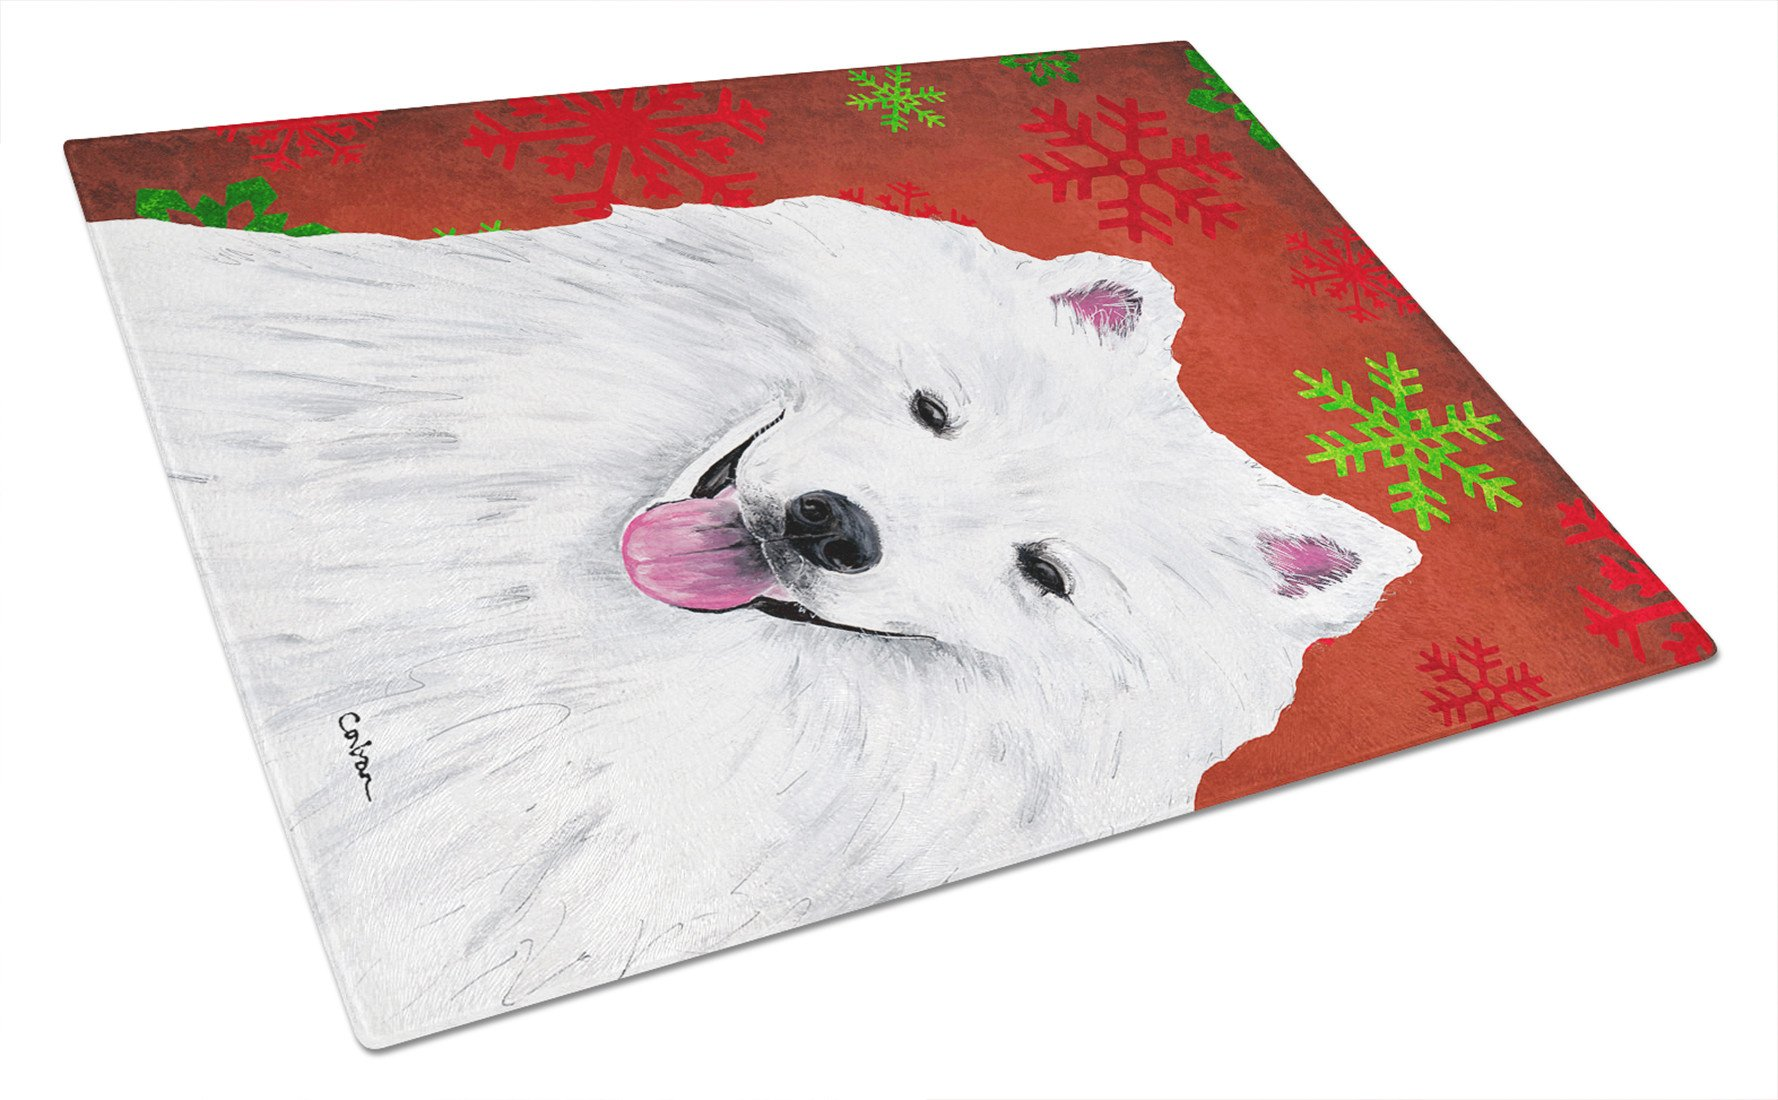 American Eskimo Red and Green Snowflakes Christmas Glass Cutting Board Large by Caroline's Treasures